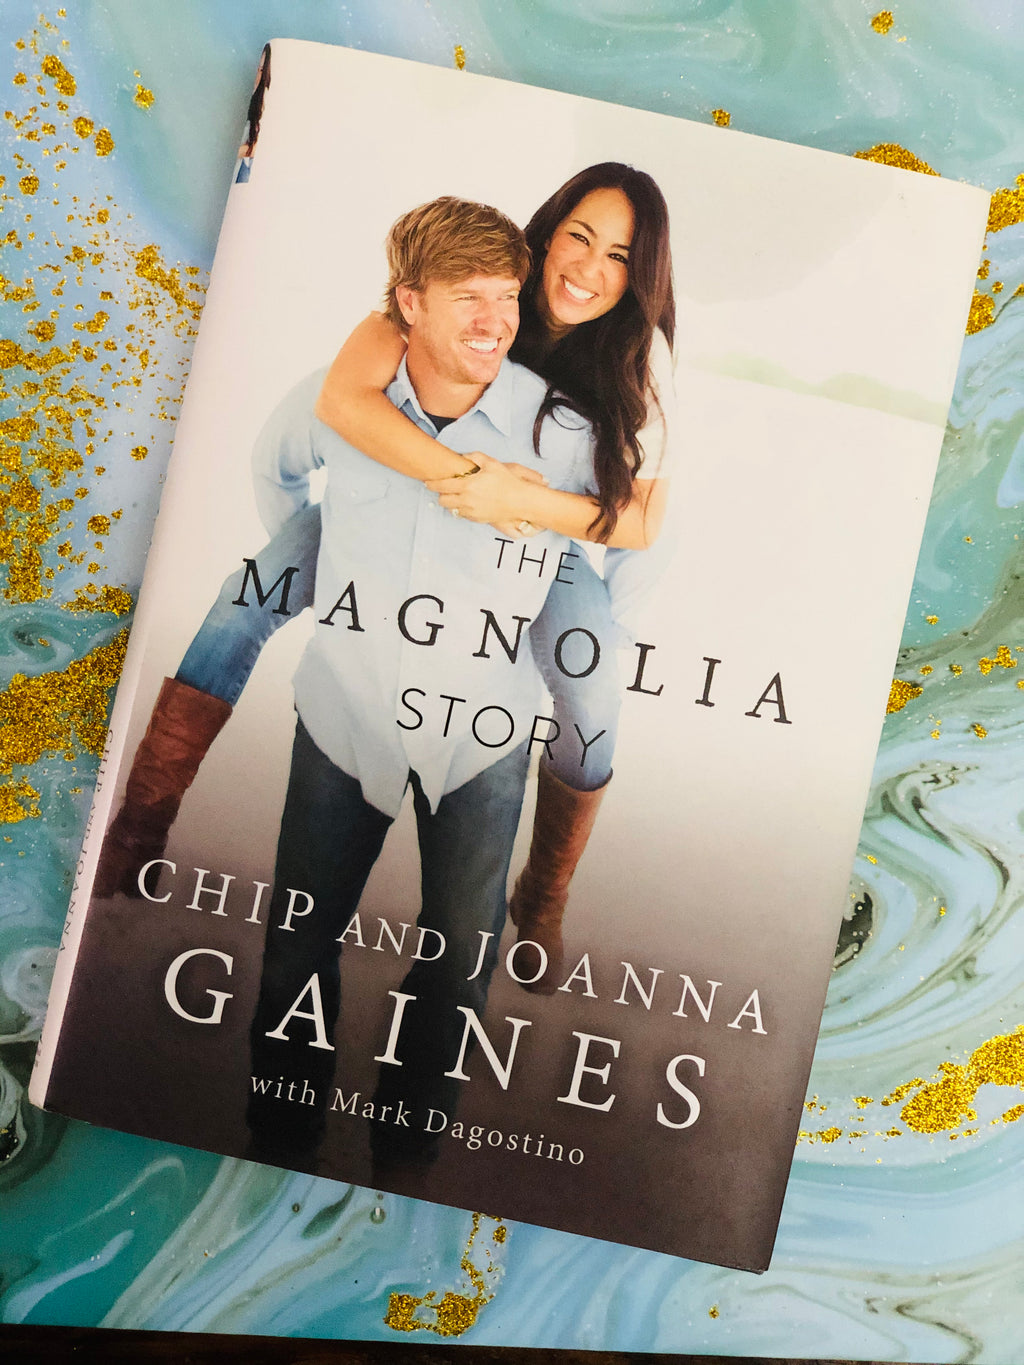 The Magnolia Story by Chip and Joanna Gaines